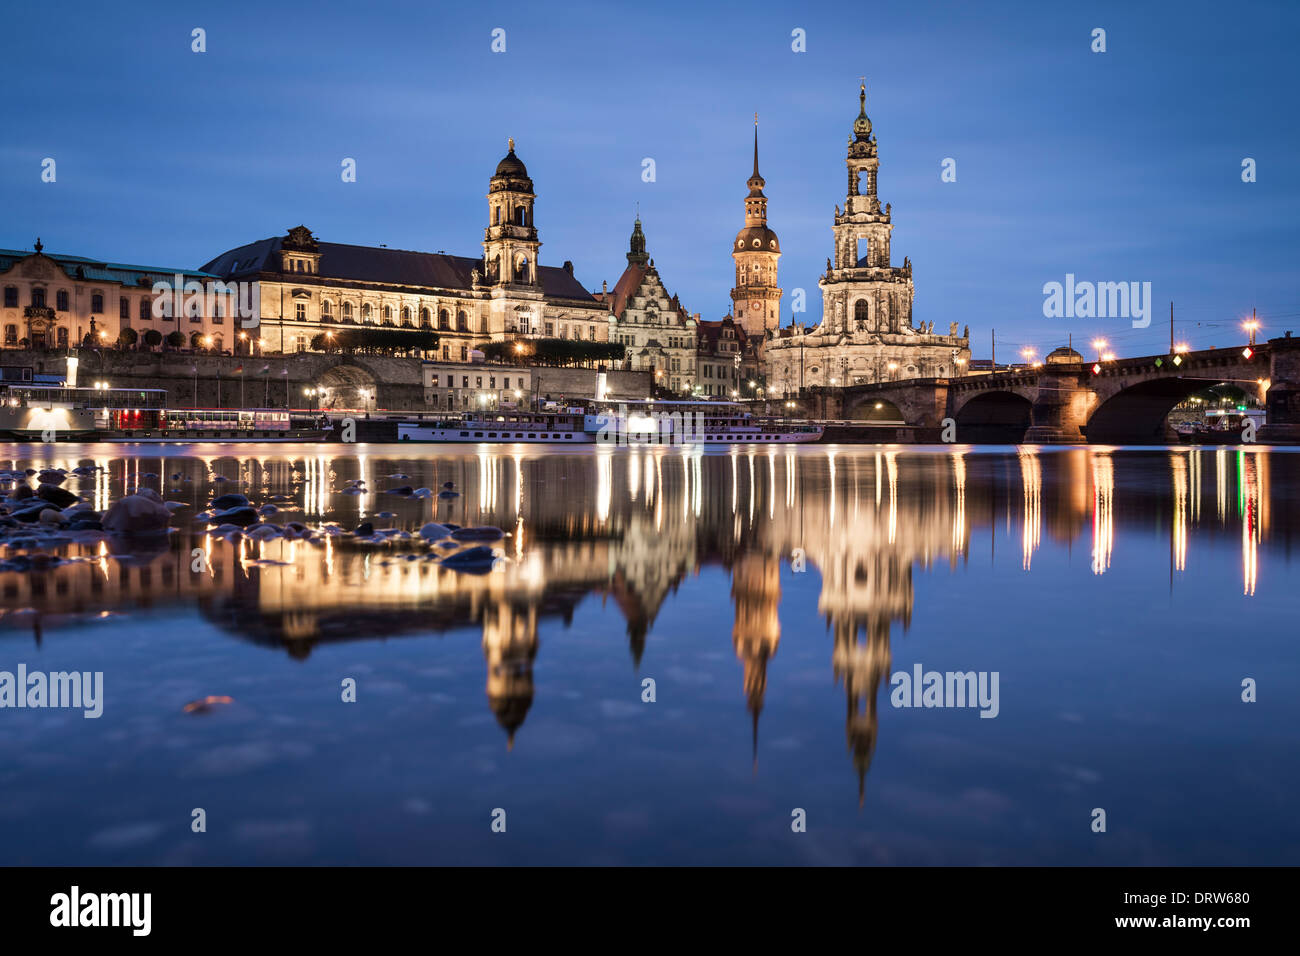 Dresden, Germany on the Elbe River. - Stock Image